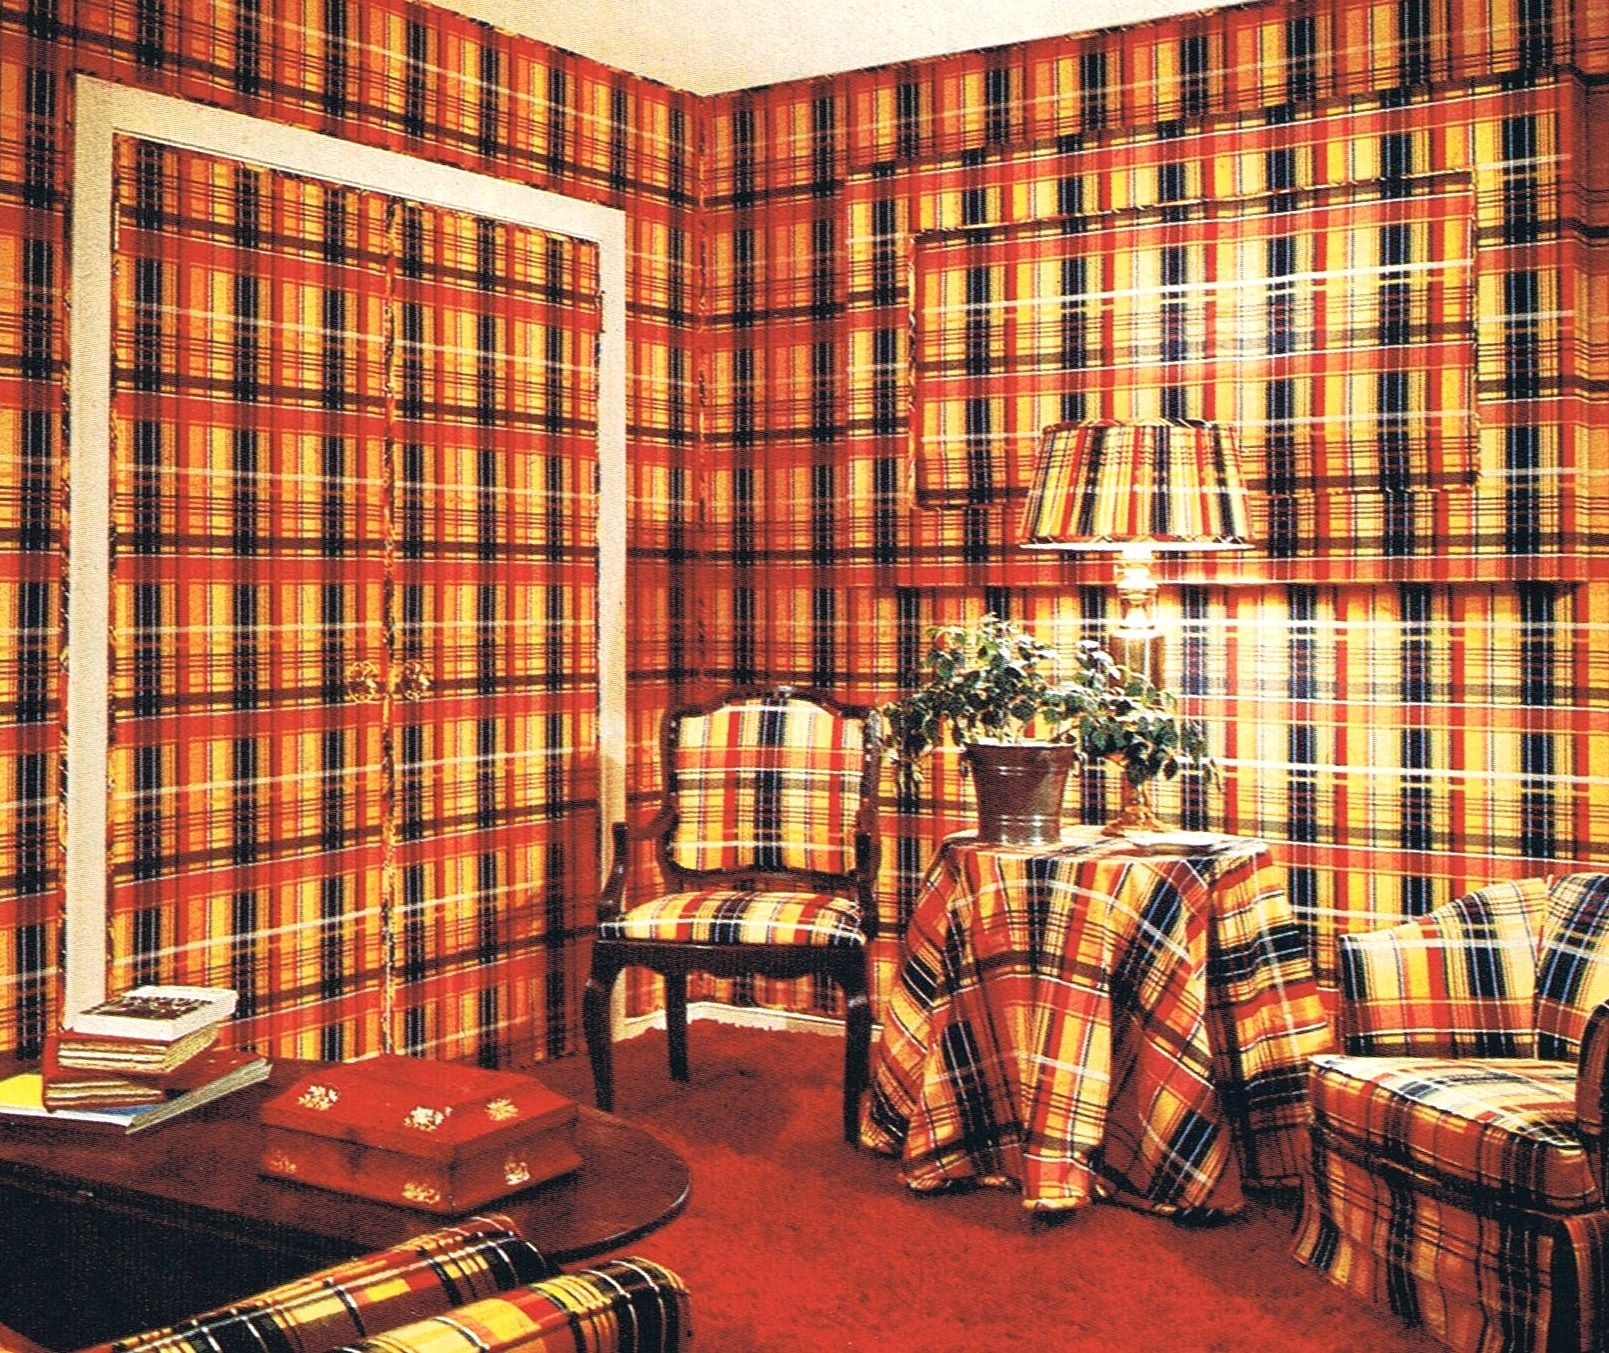 Or Possibly Because Of Plaid Thriftstorescans Idea From The Better Homes Gardens Decorating Book